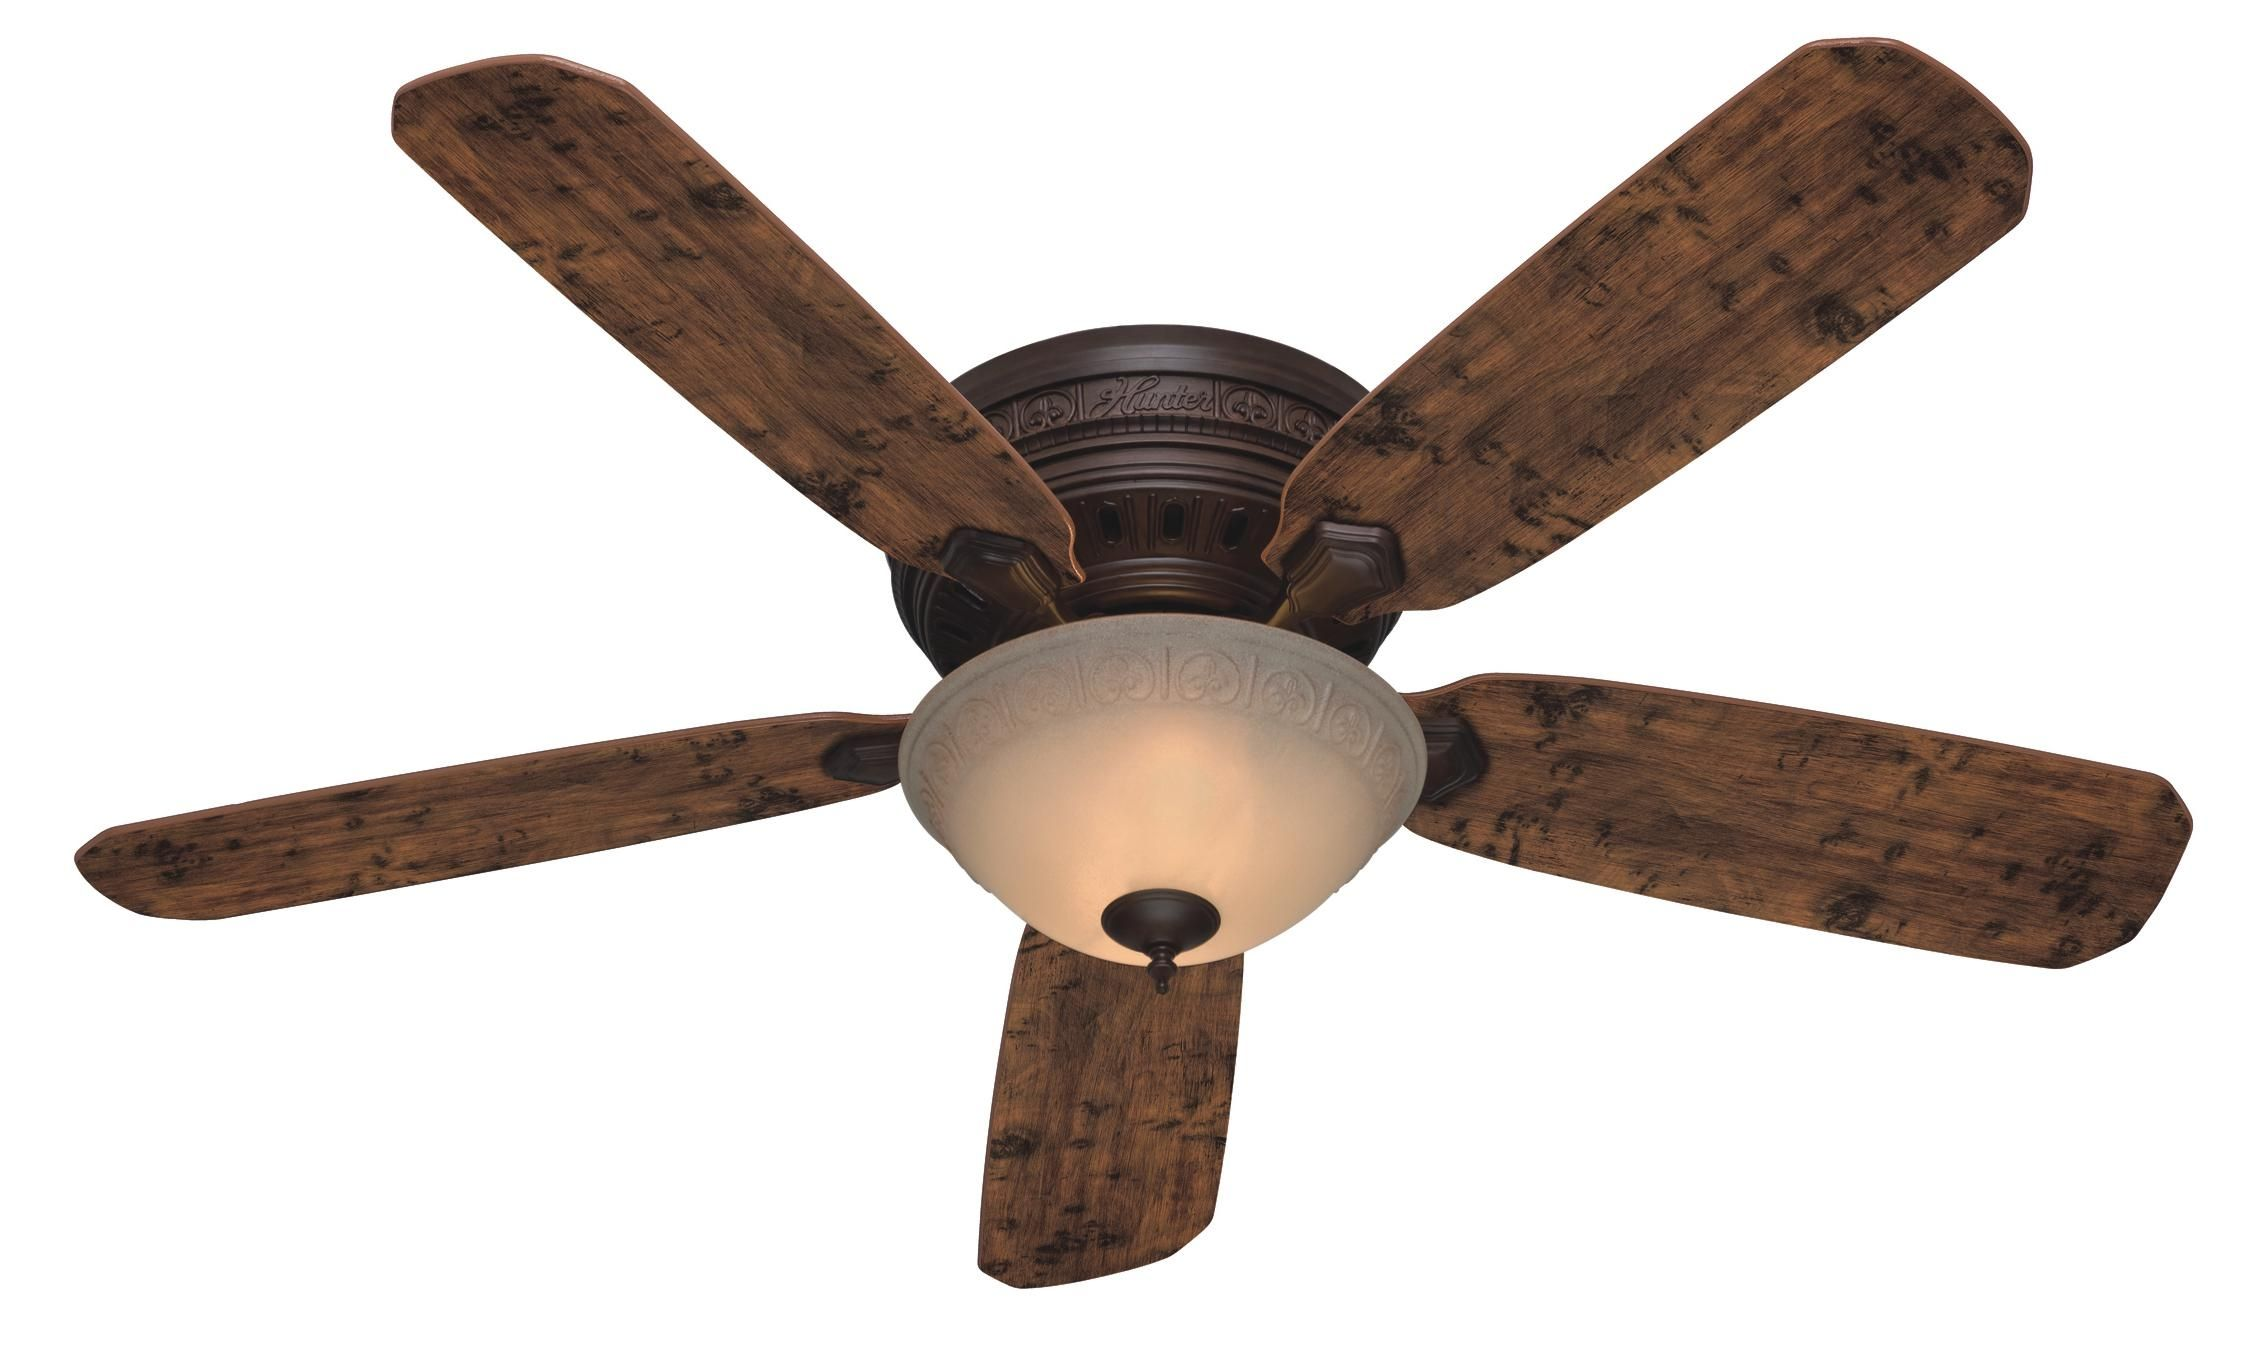 Old hunter ceiling fan models httponlinecompliancefo pinterest old hunter ceiling fan models aloadofball Image collections